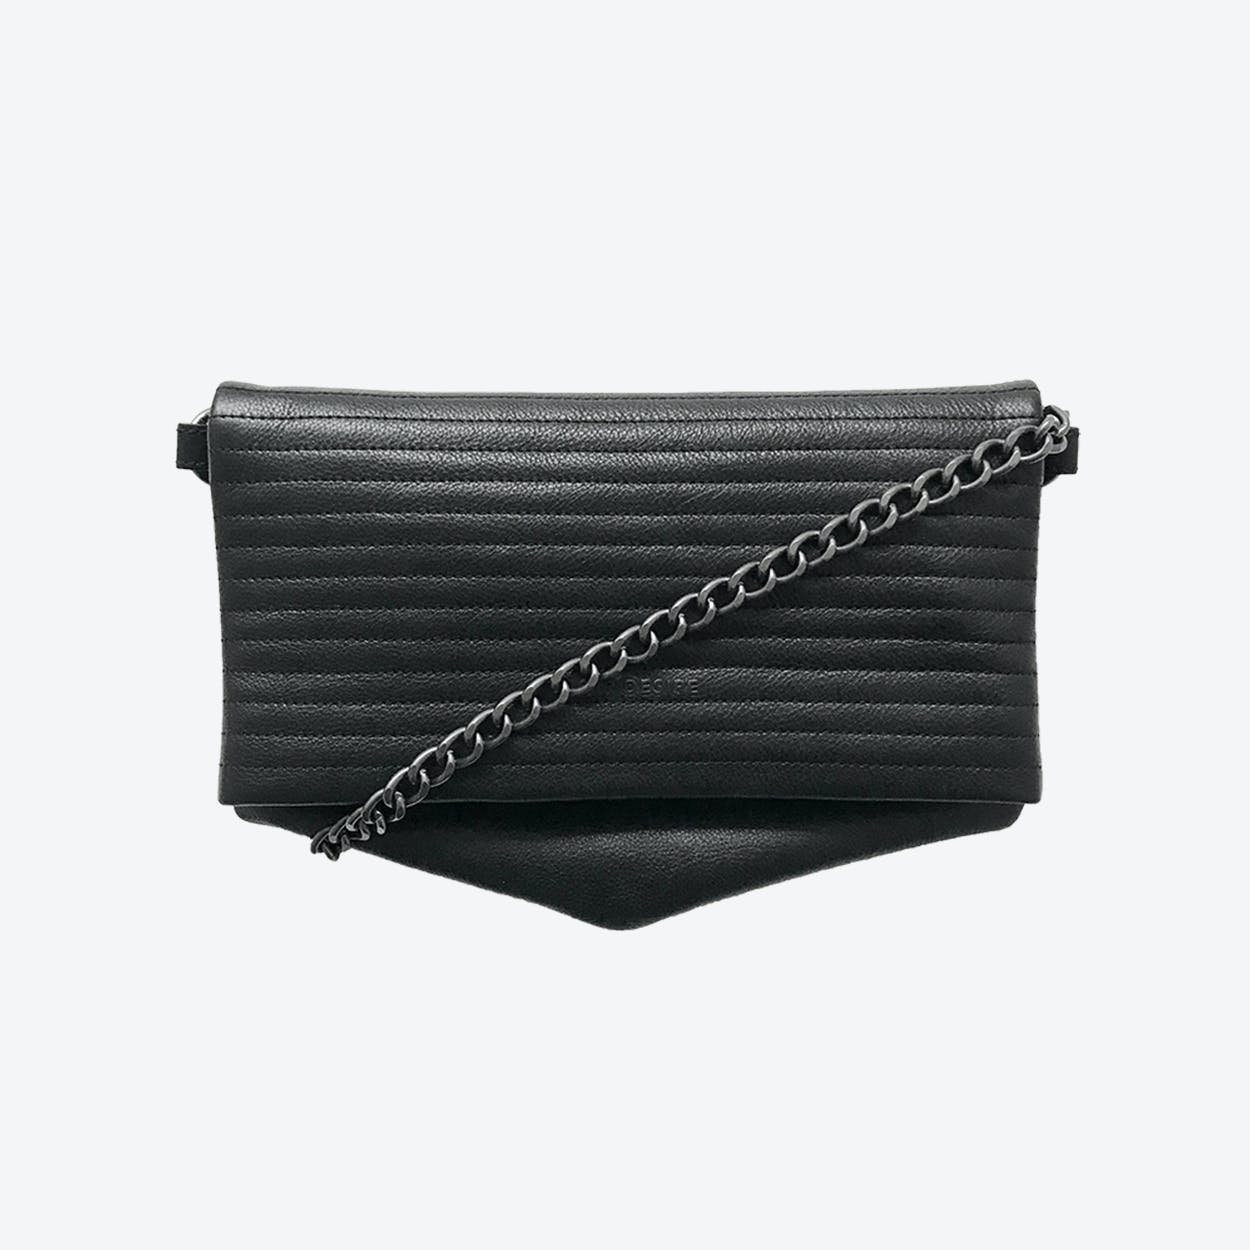 ND Folded Big Pinstripe #5 - 3-in-1 Leather Bag